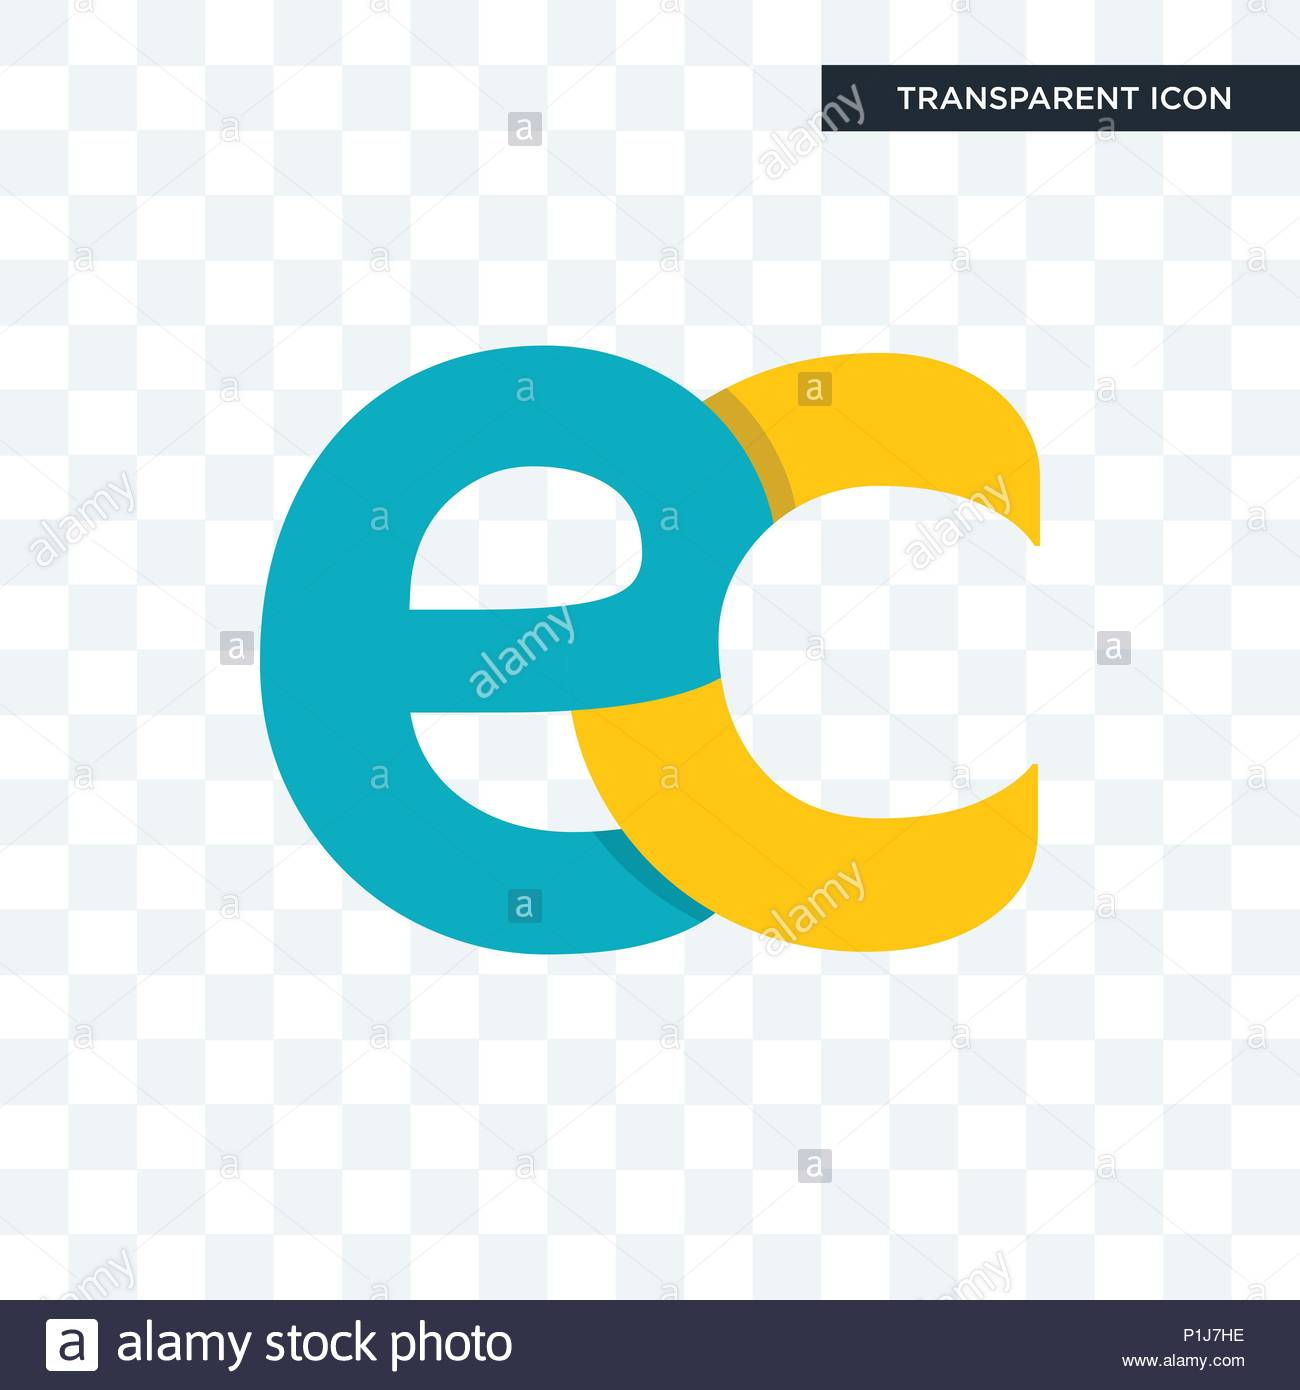 ec vector icon isolated on transparent background ec logo concept 1300x1390